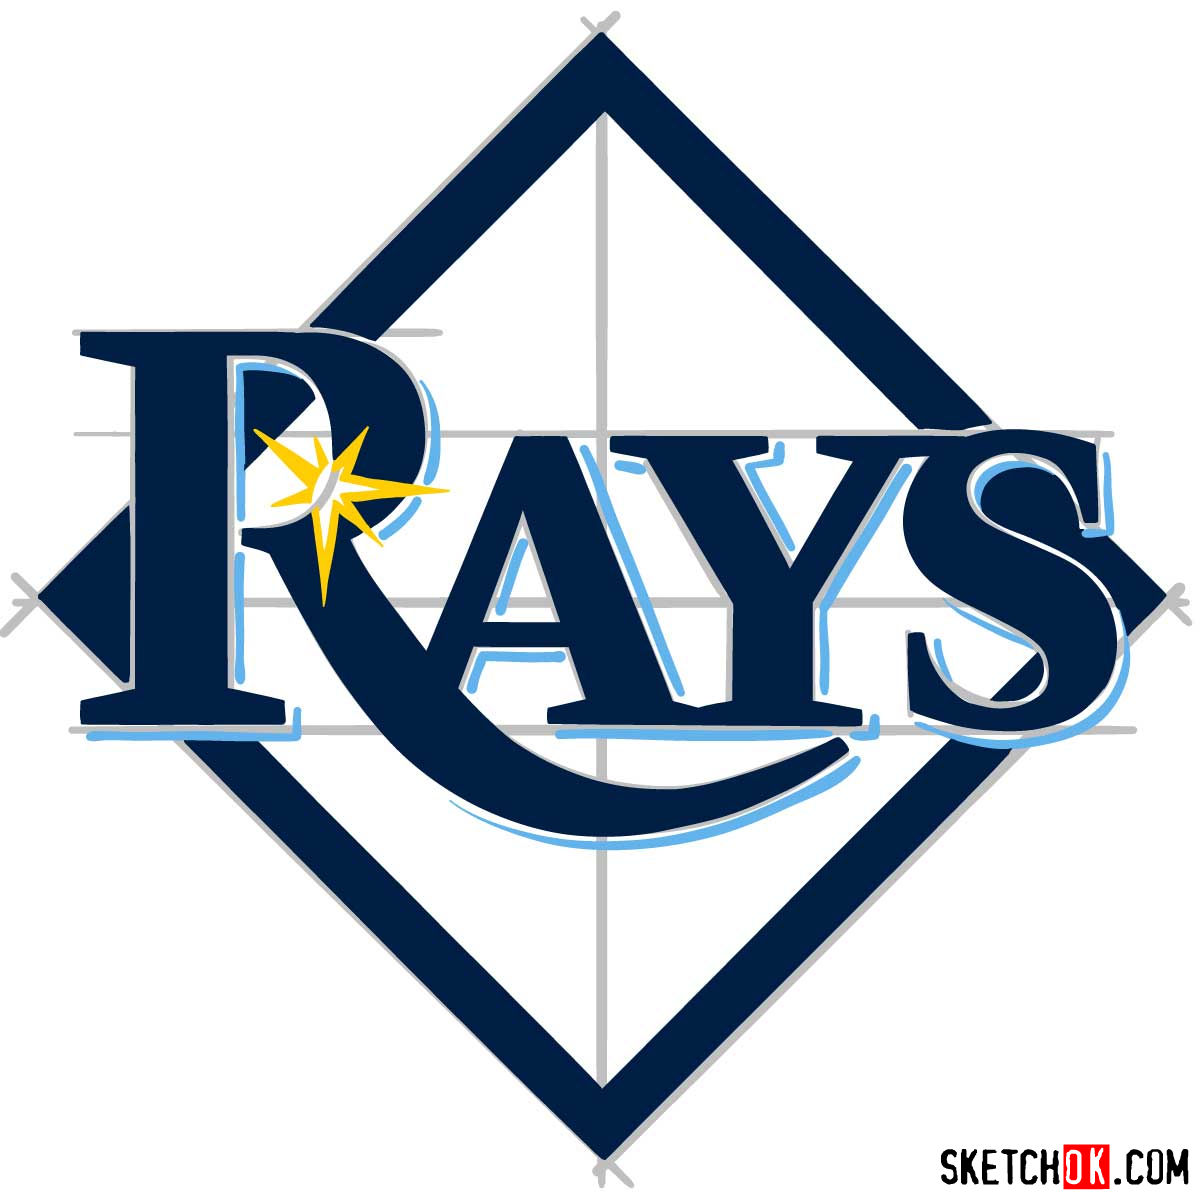 How to draw Tampa Bay Rays logo | MLB logos - step 10